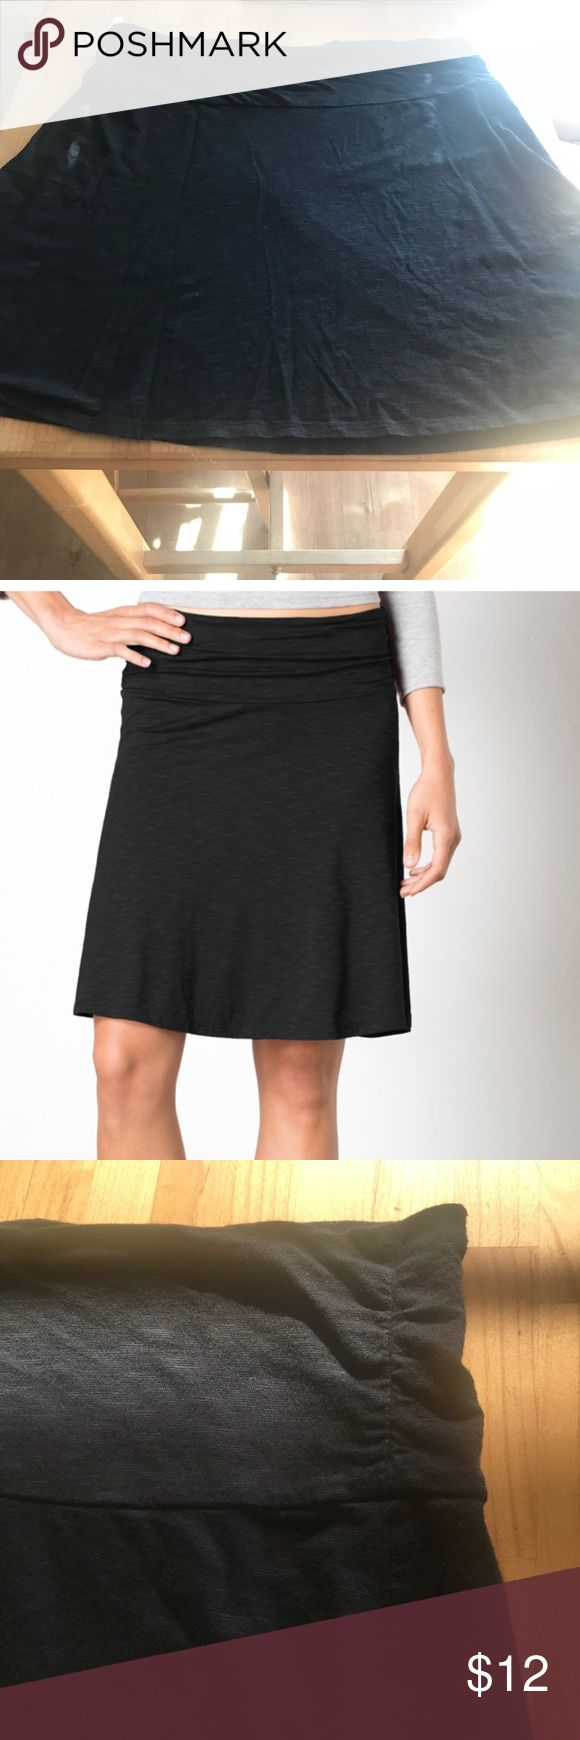 """Perfect Little Black Skirt for Everyday Toad & Co skirt is a mix of cotton, tencel & spandex. This skirt is super comfortable & hangs easily with a slight A-line cut.  It rests just above the knees. The waistband is 4"""" & can be scrunched for various looks. The waistband has give but isn't elastic. There is a vertical seam on either side of the skirt.  Mini stash pocket inside the waistband.  This skirt is comfortable enough to hike in & cute enough to wear out for dinner post hike.  I wore…"""